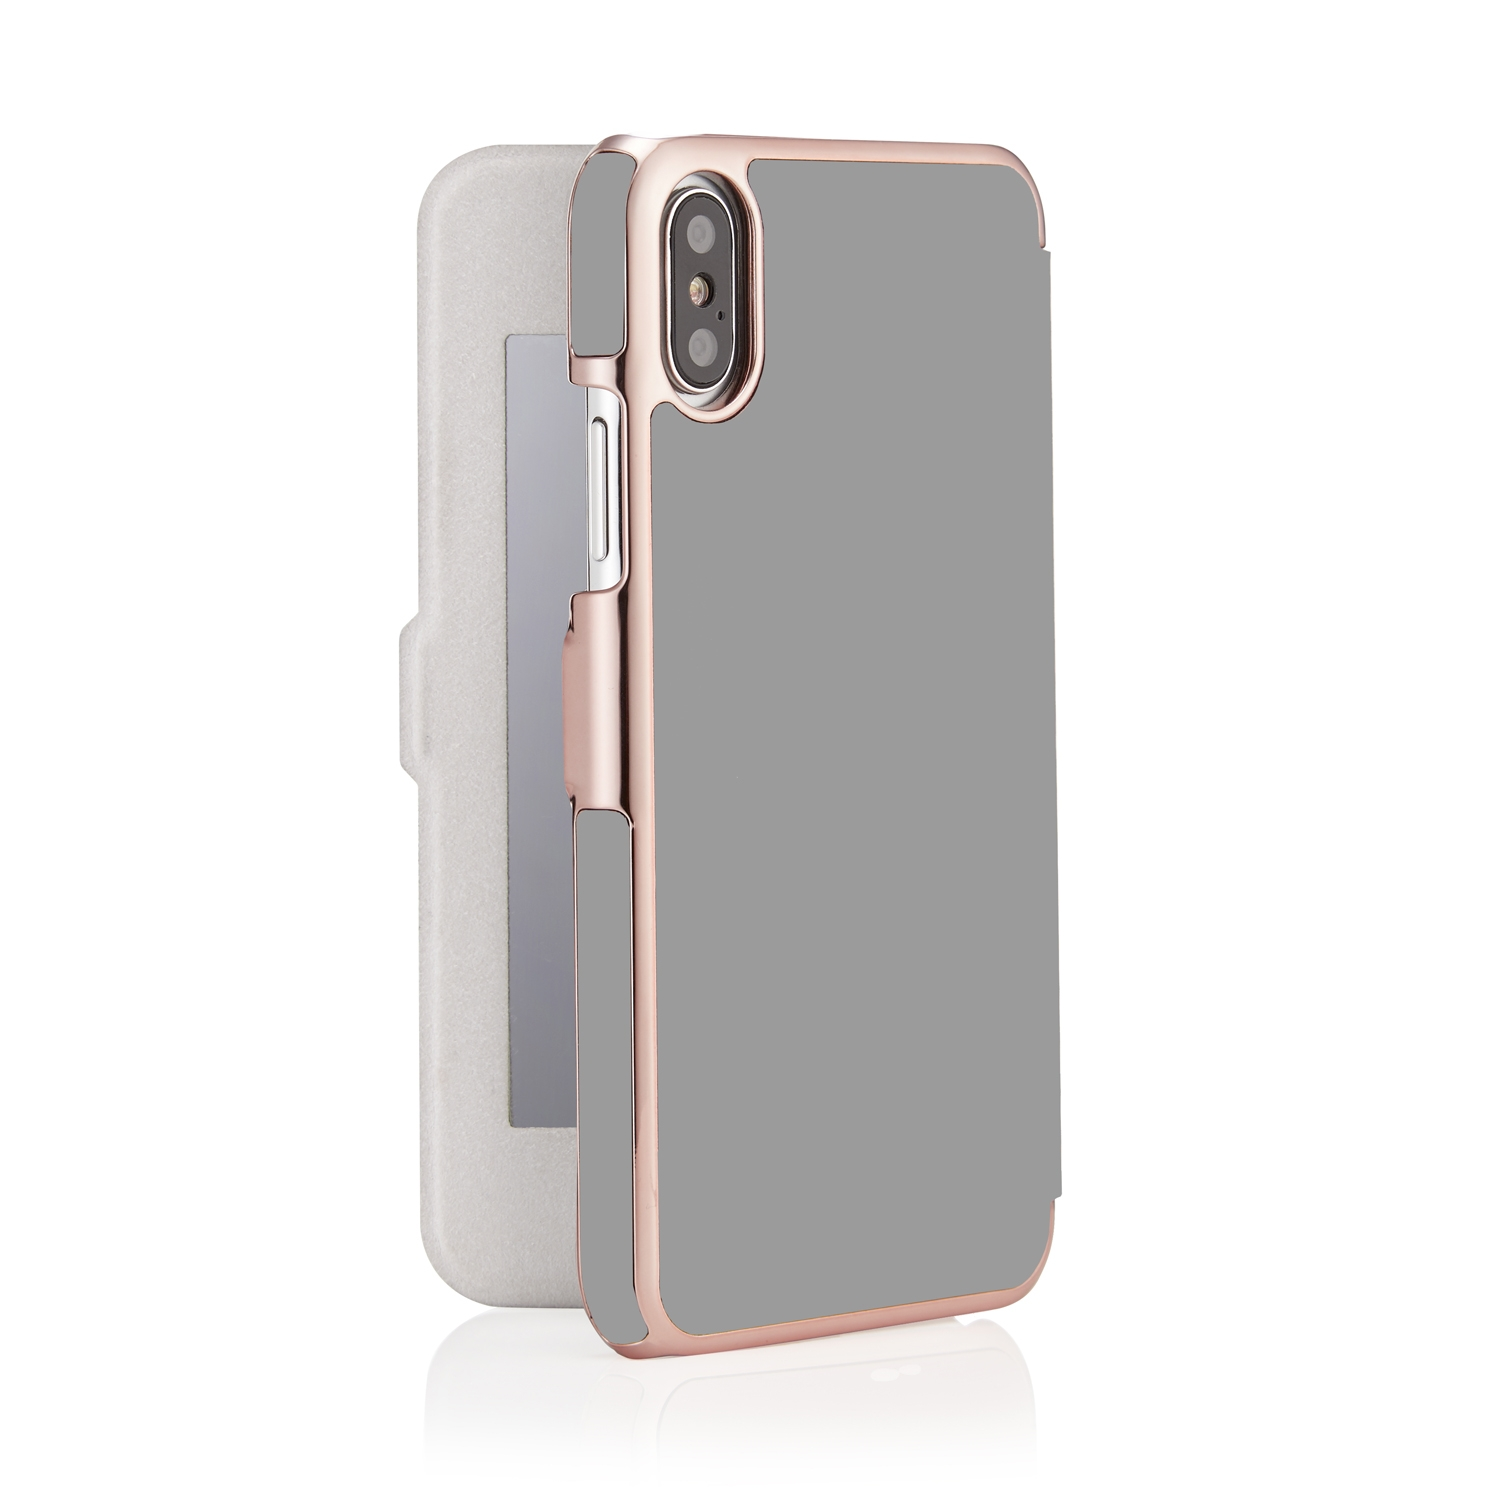 100% authentic 58f50 219c3 iPhone X/XS Slim Mirror Case - Grey & Rose Gold (Online Exclusive)